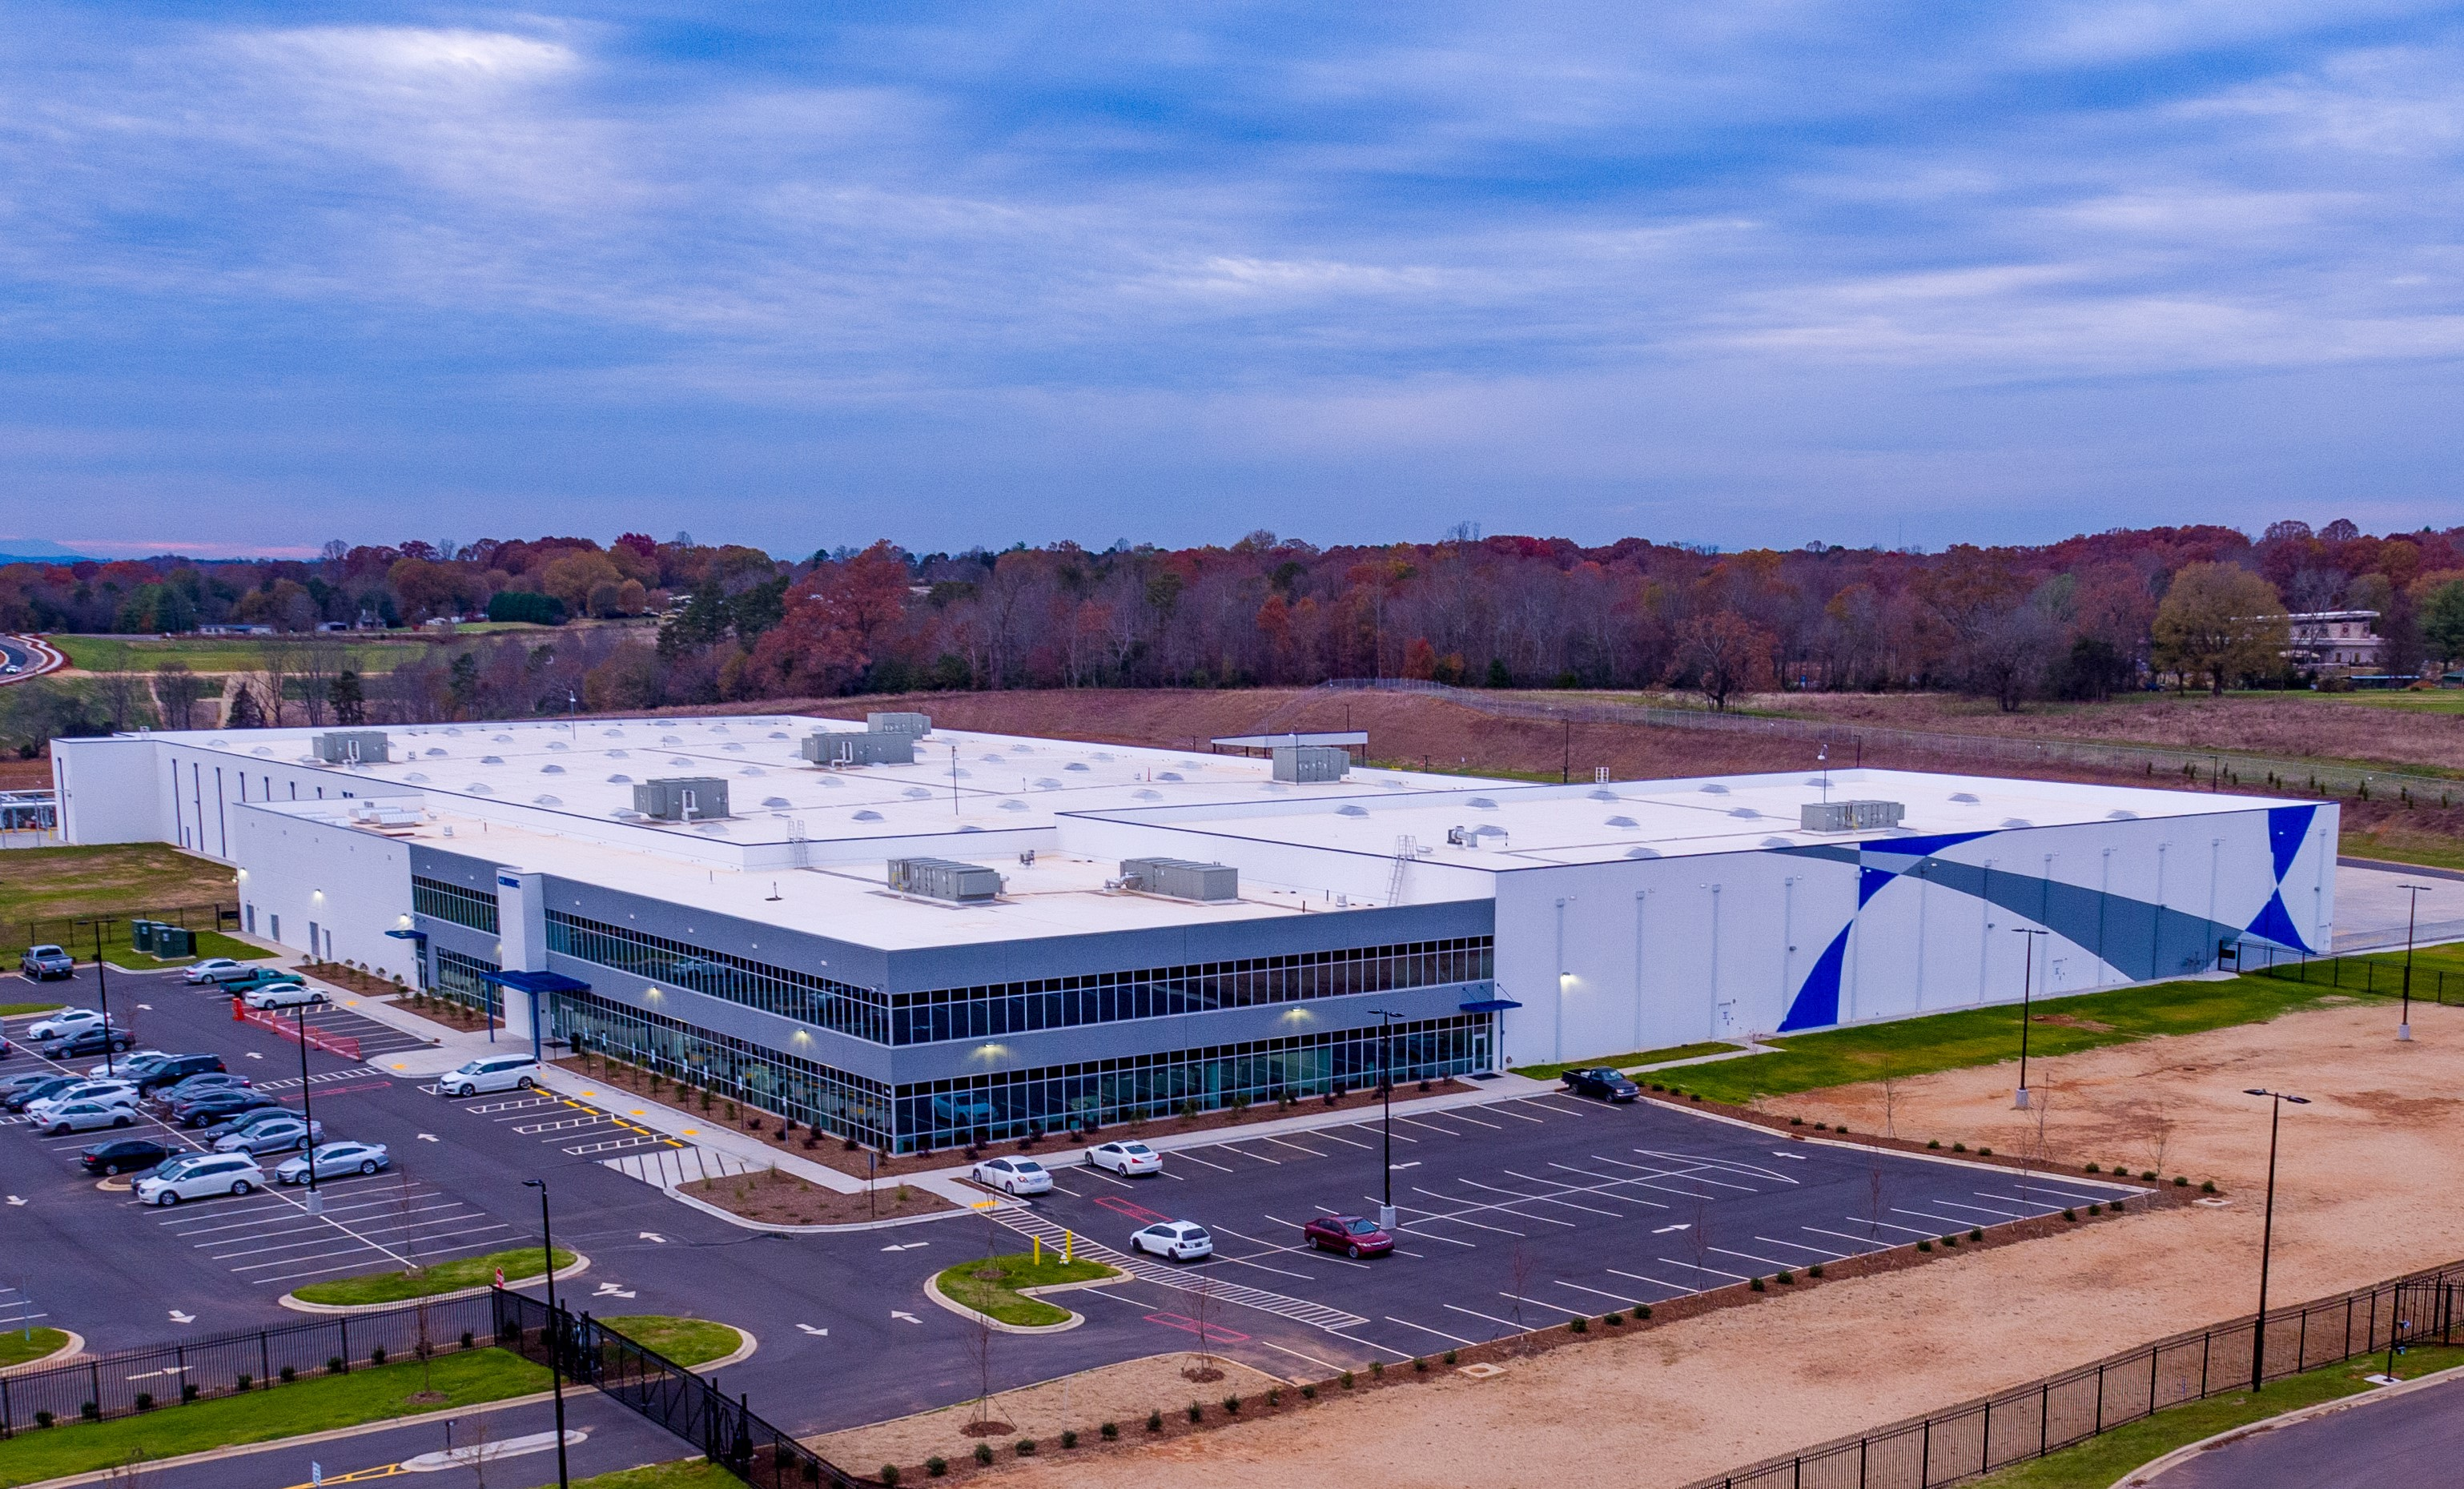 Corning to invest $150 million and create 200 jobs in expansion at Trivium Corporate Center